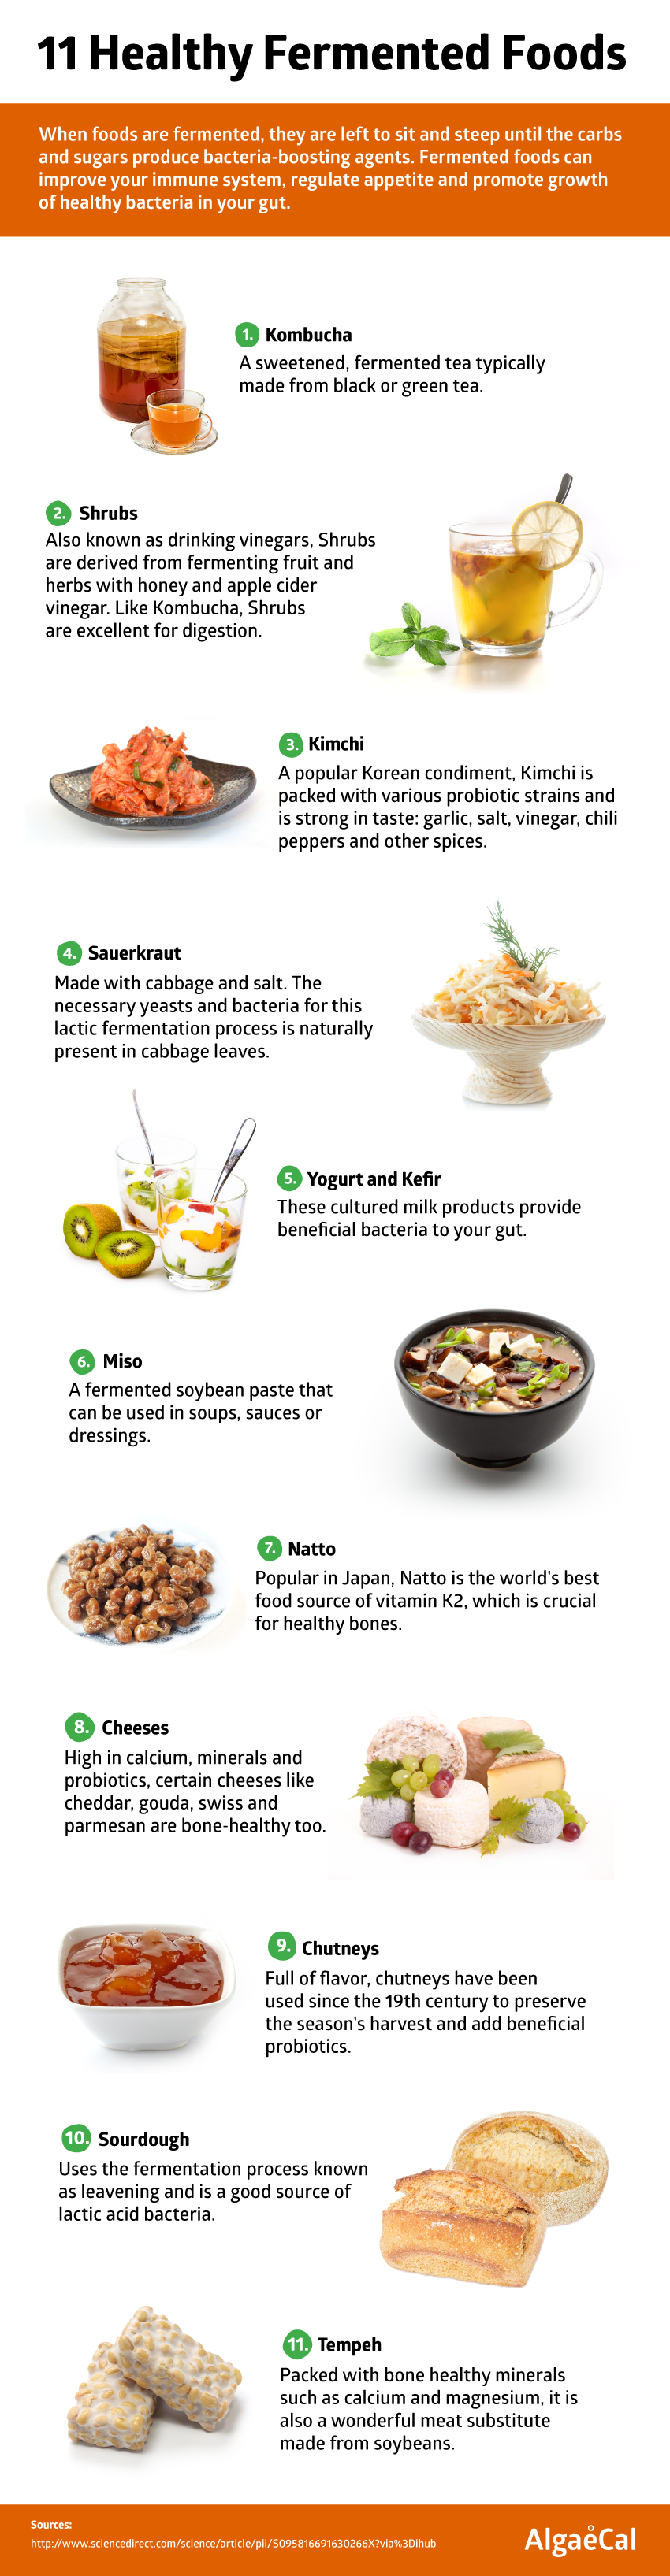 11 fermented foods infographic